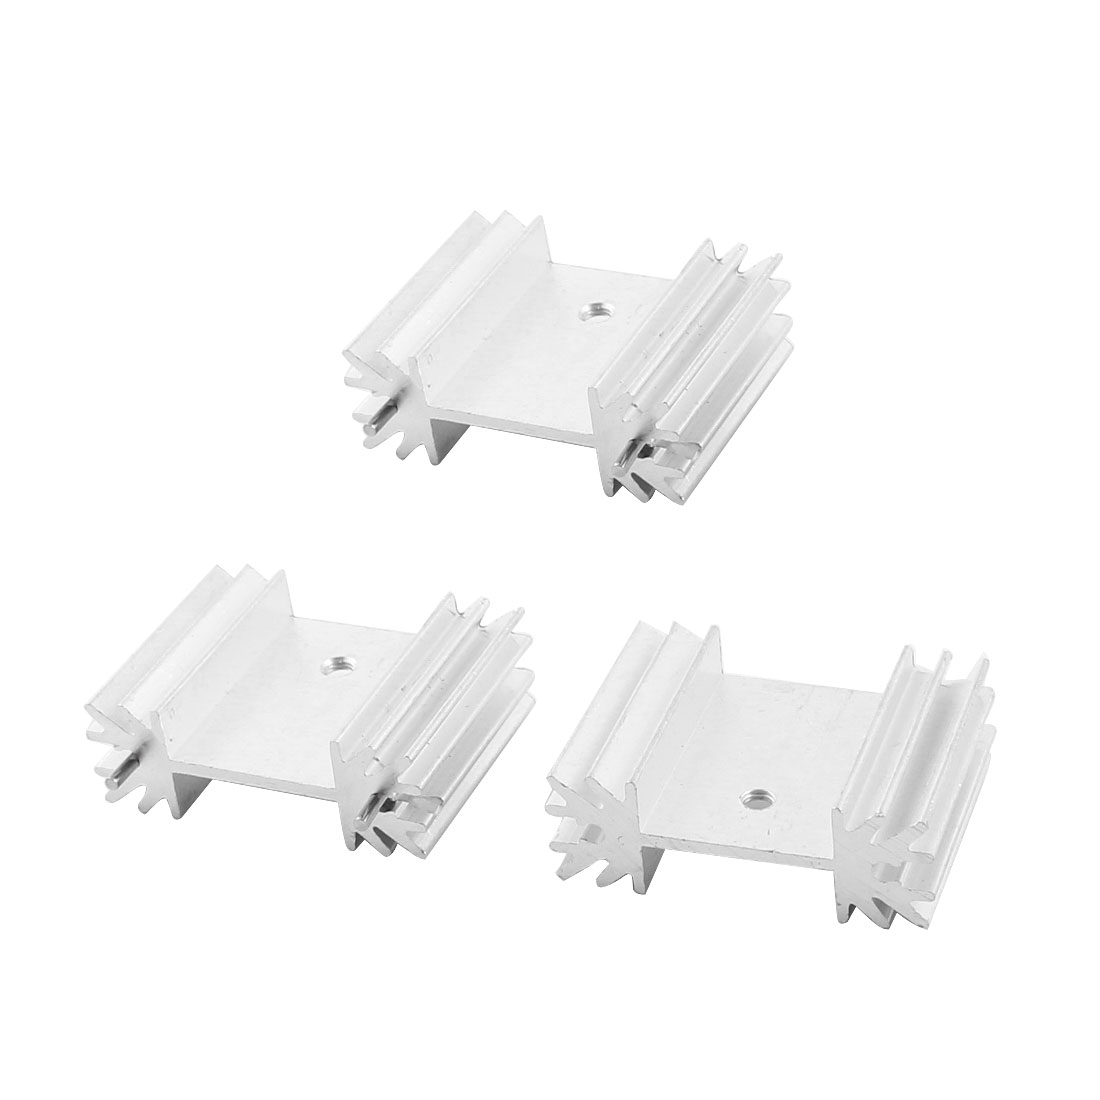 3Pcs 34x12x25mm Aluminium Heatsink Heat Dissipate Cooler Cooling Fin w Needle for PCB Board